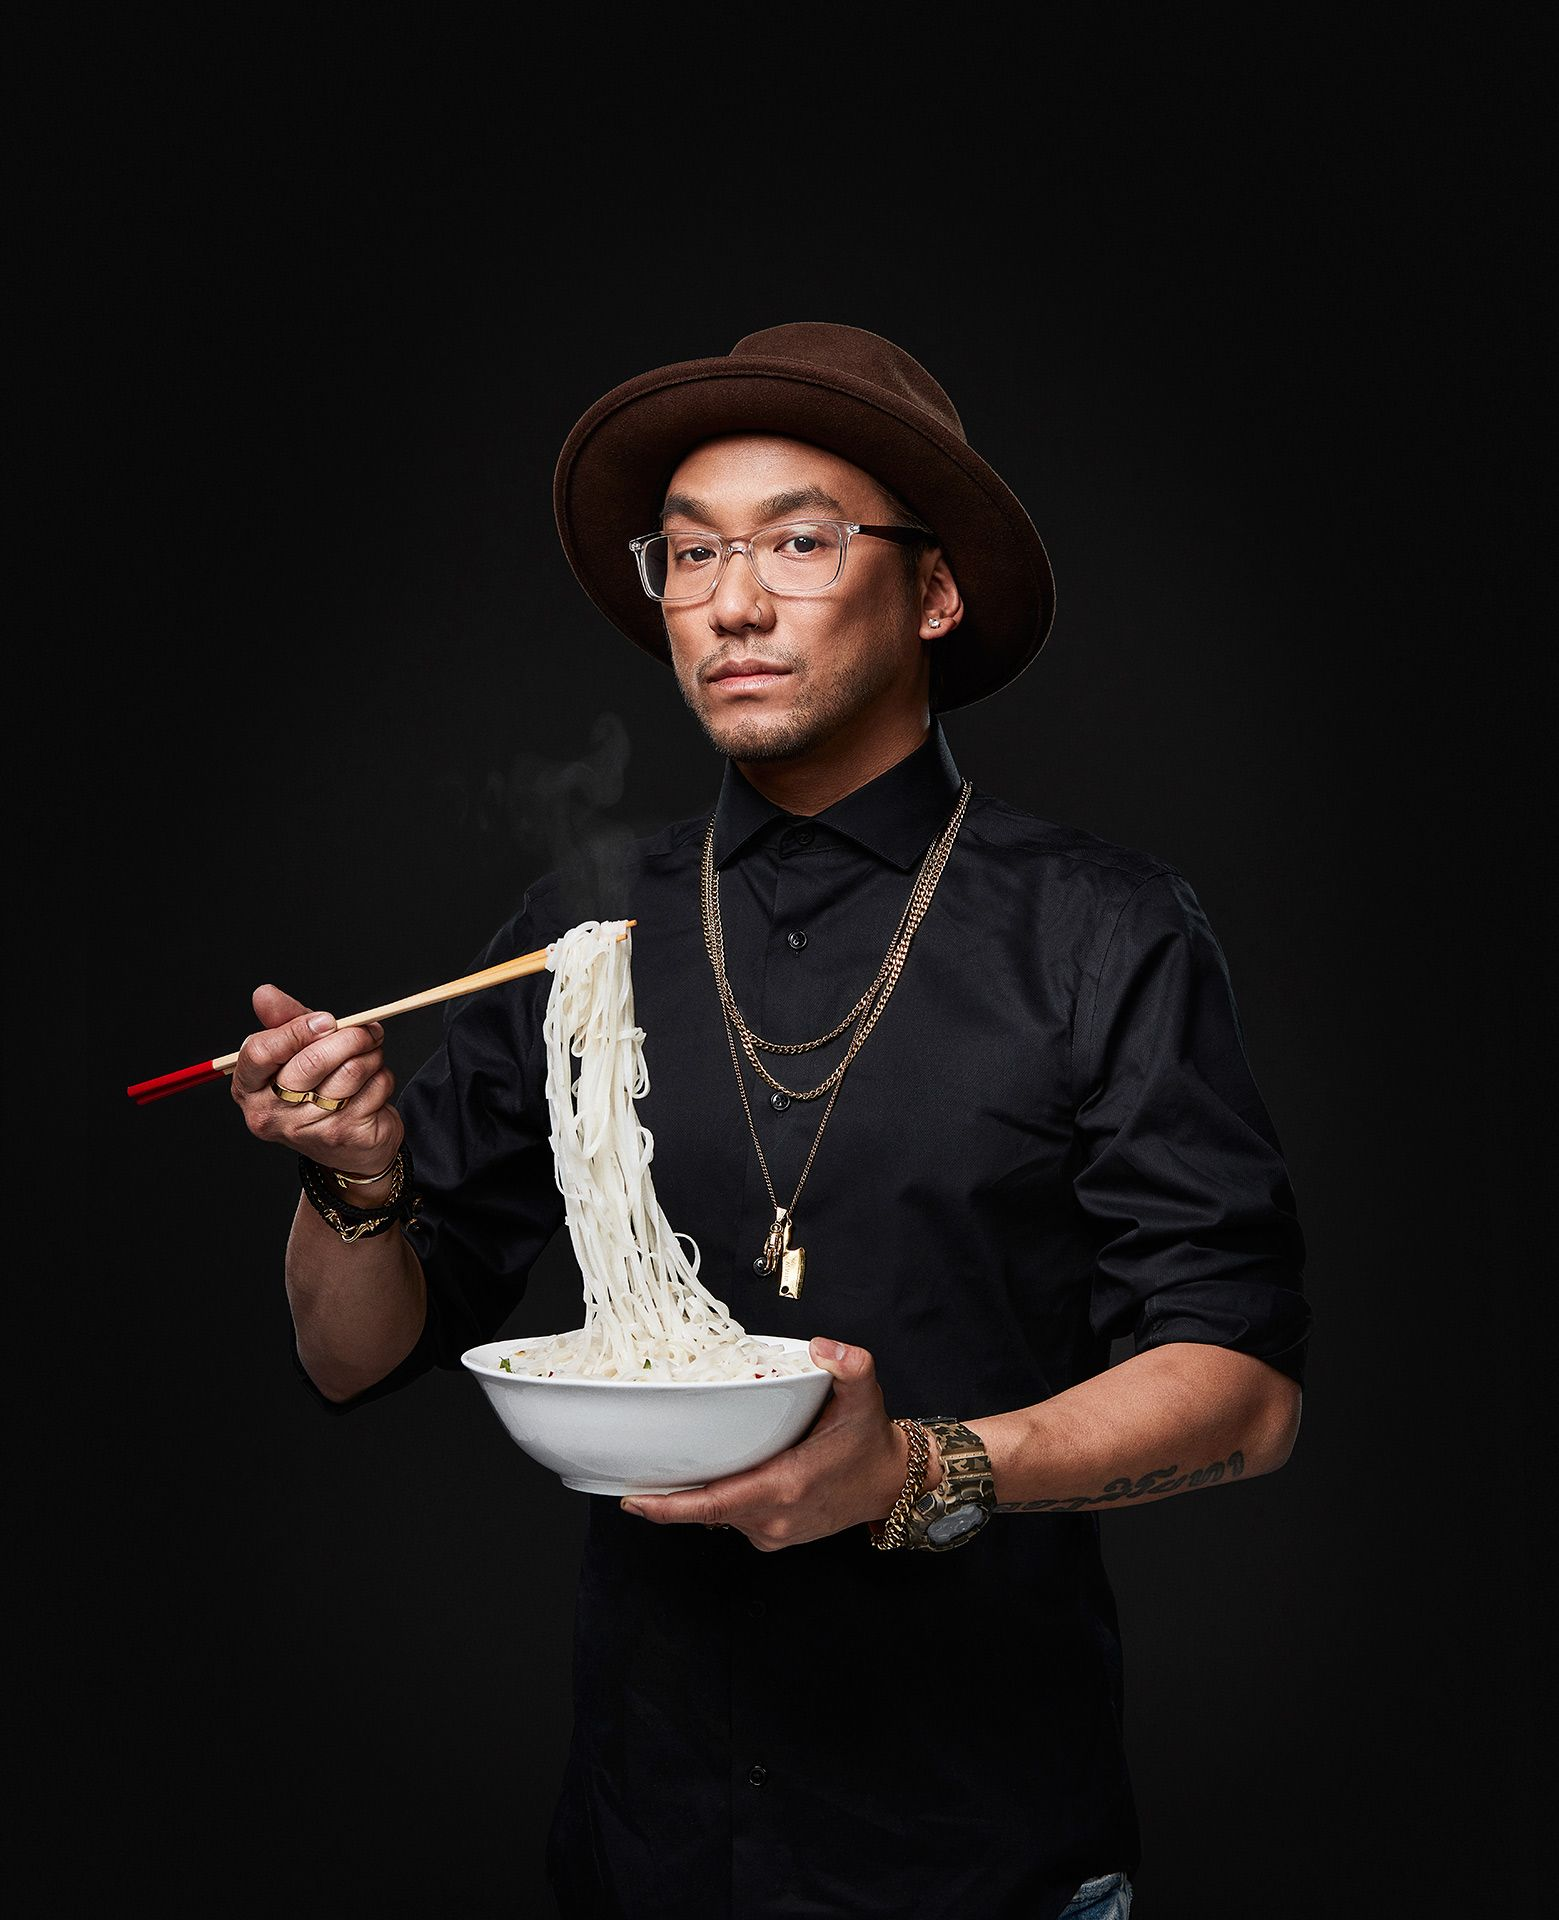 portrait of chef Ross Louangsignotha looking poised wearing jewelry holding chopsticks and a bowl moving rice noodles towards his mouth by Jocelyn Michel for the Cathcart